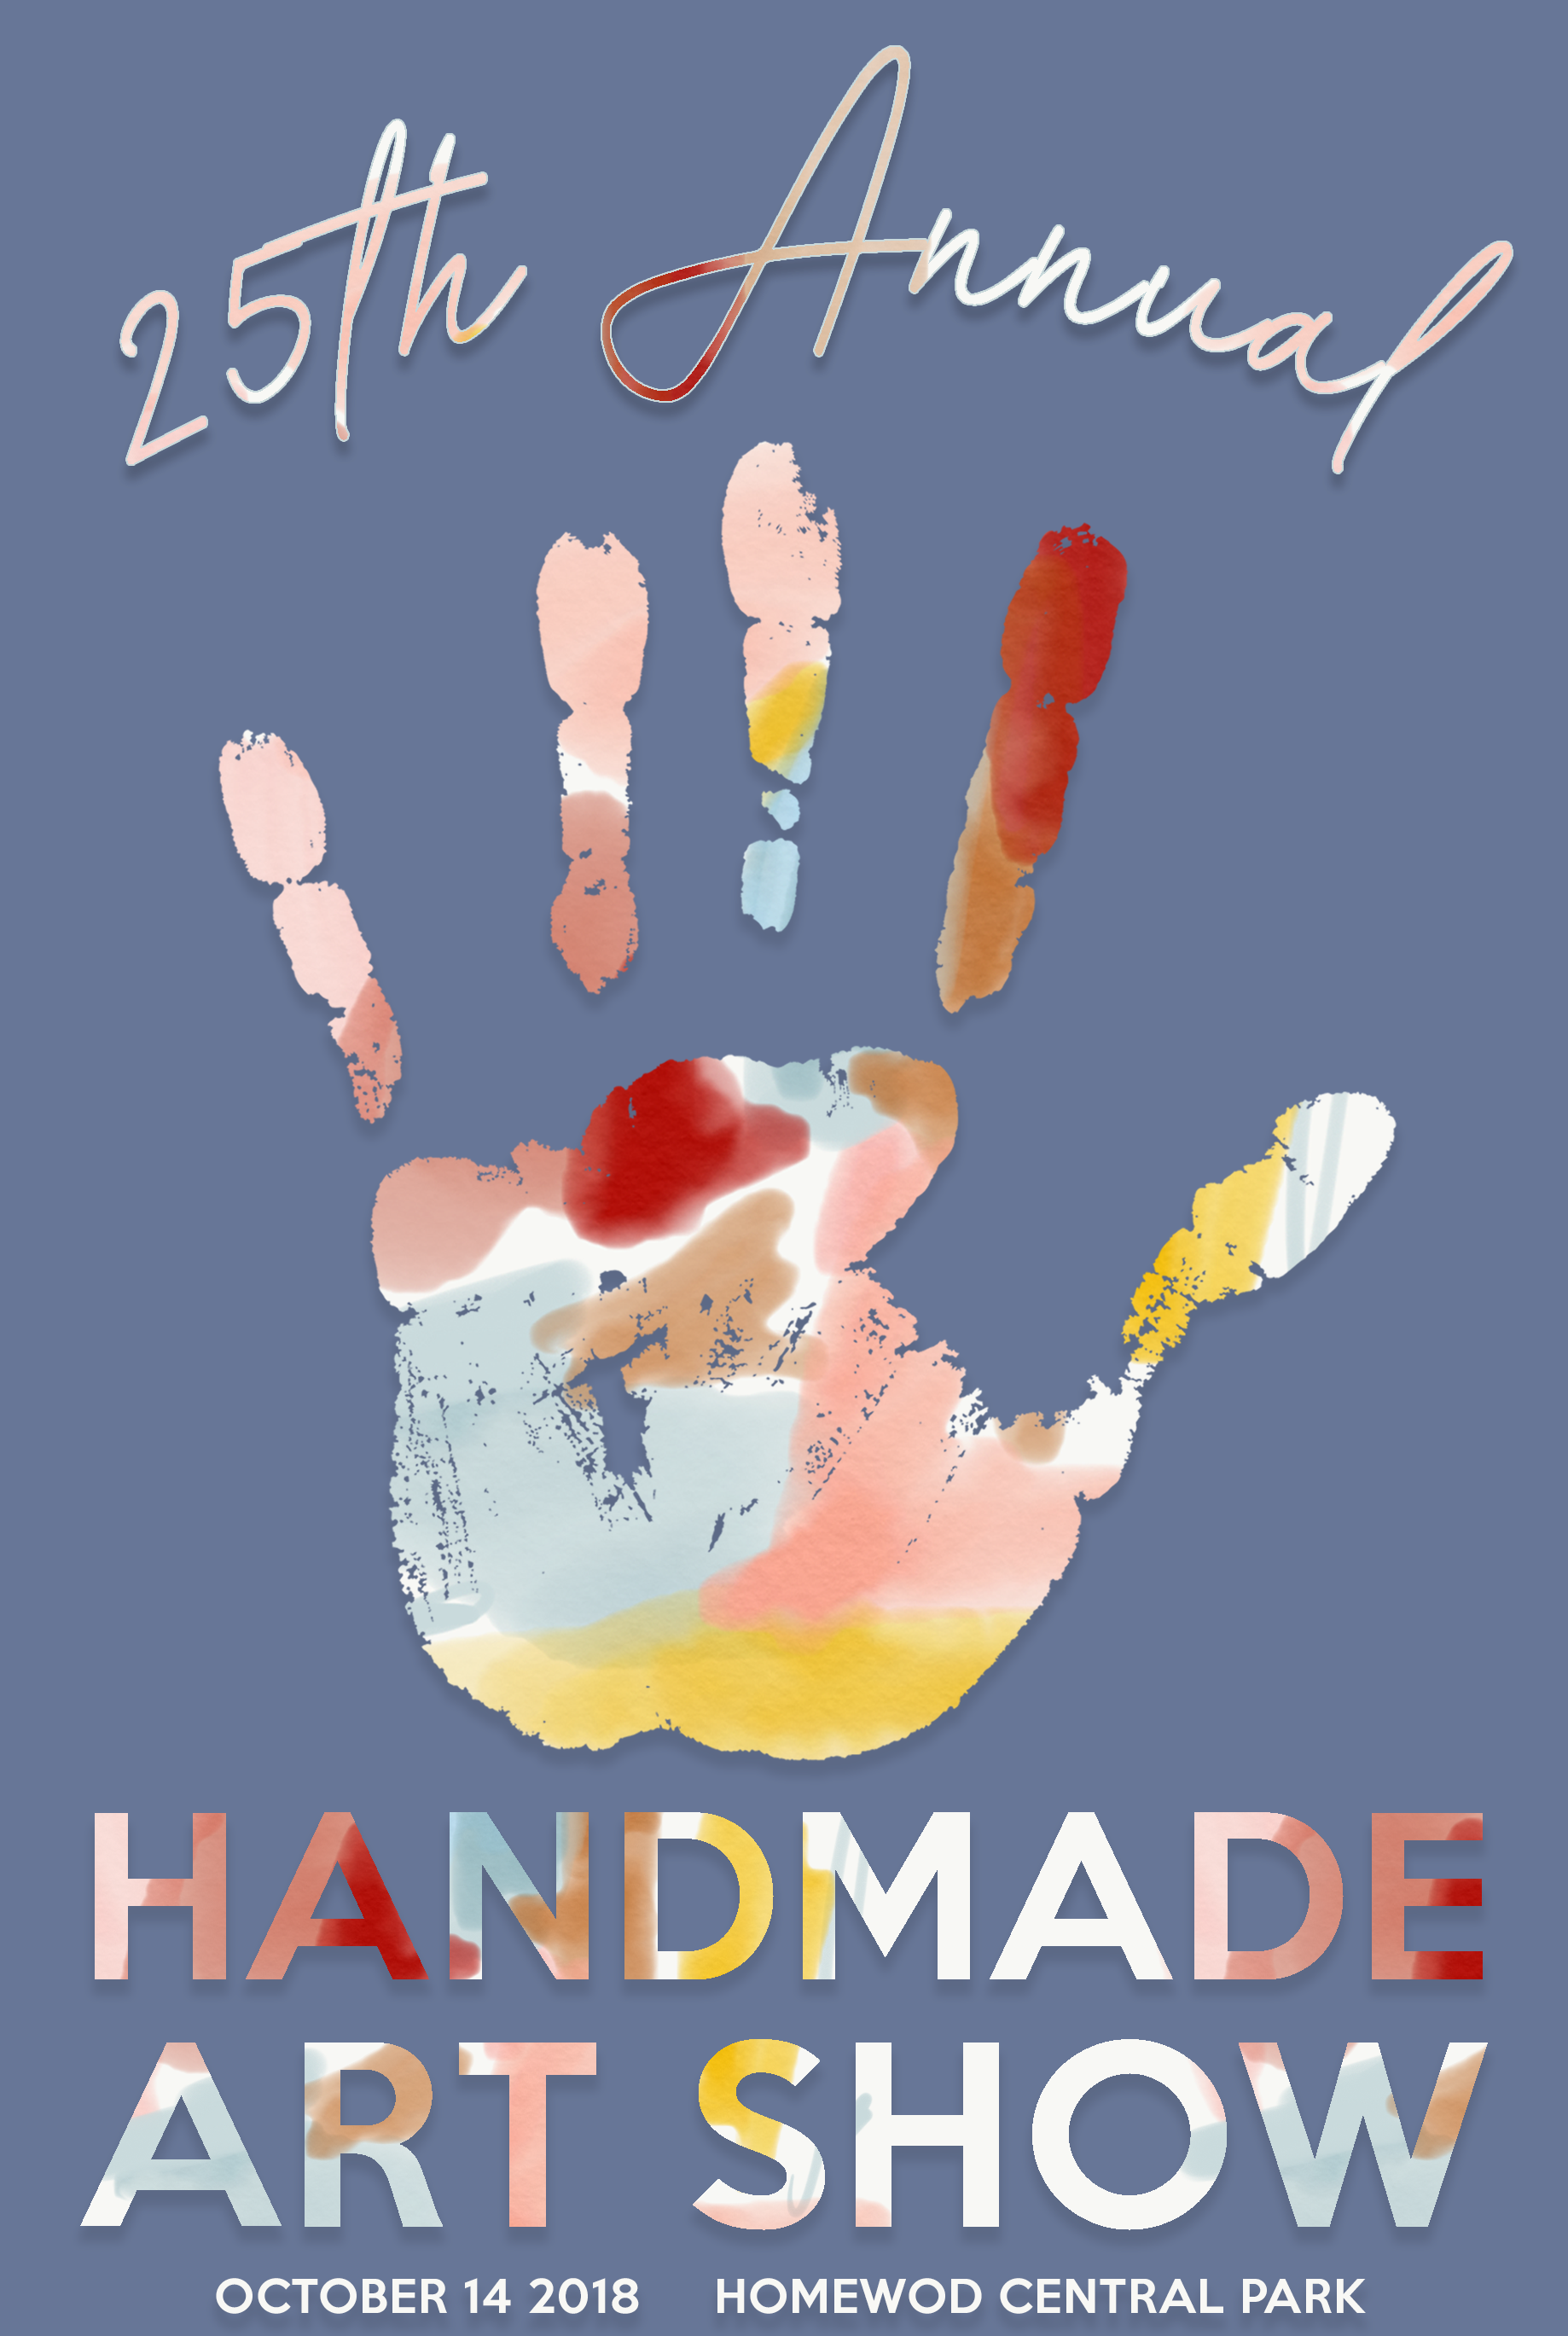 Artist Application - Handmade Art Show is a small, carefully curated art show featuring an eclectic array of local artists.